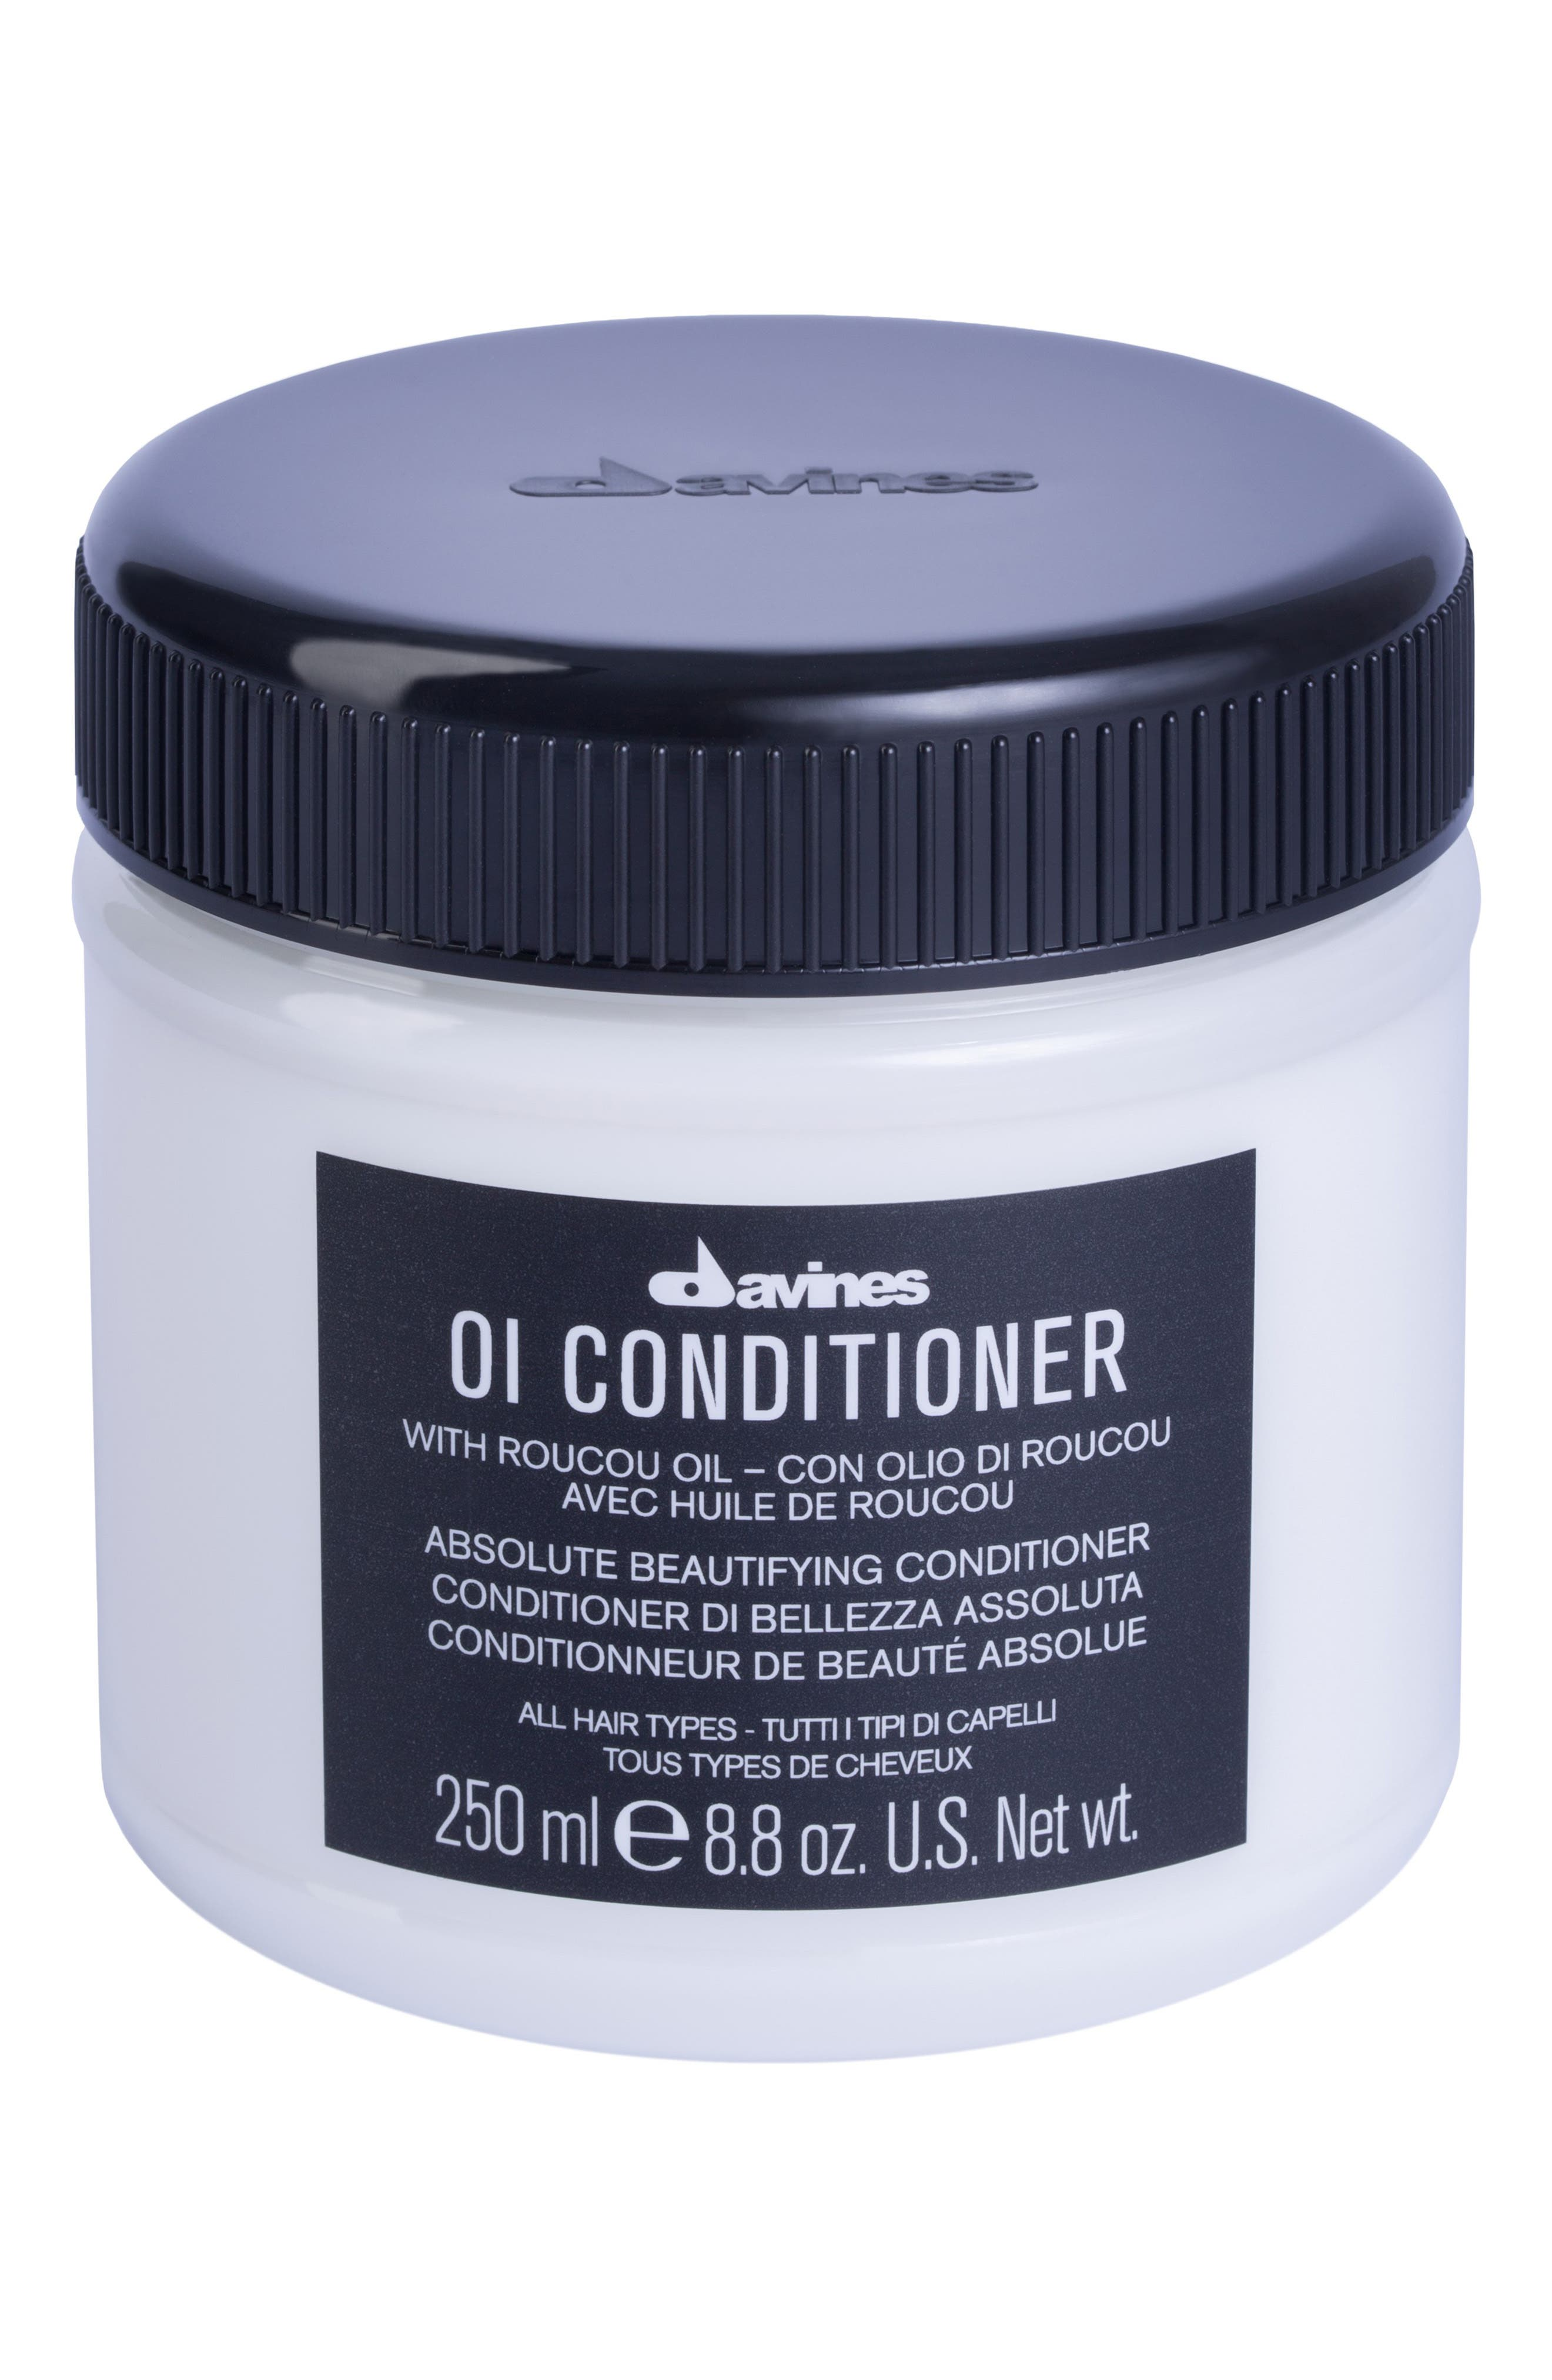 OI Conditioner at Nordstrom